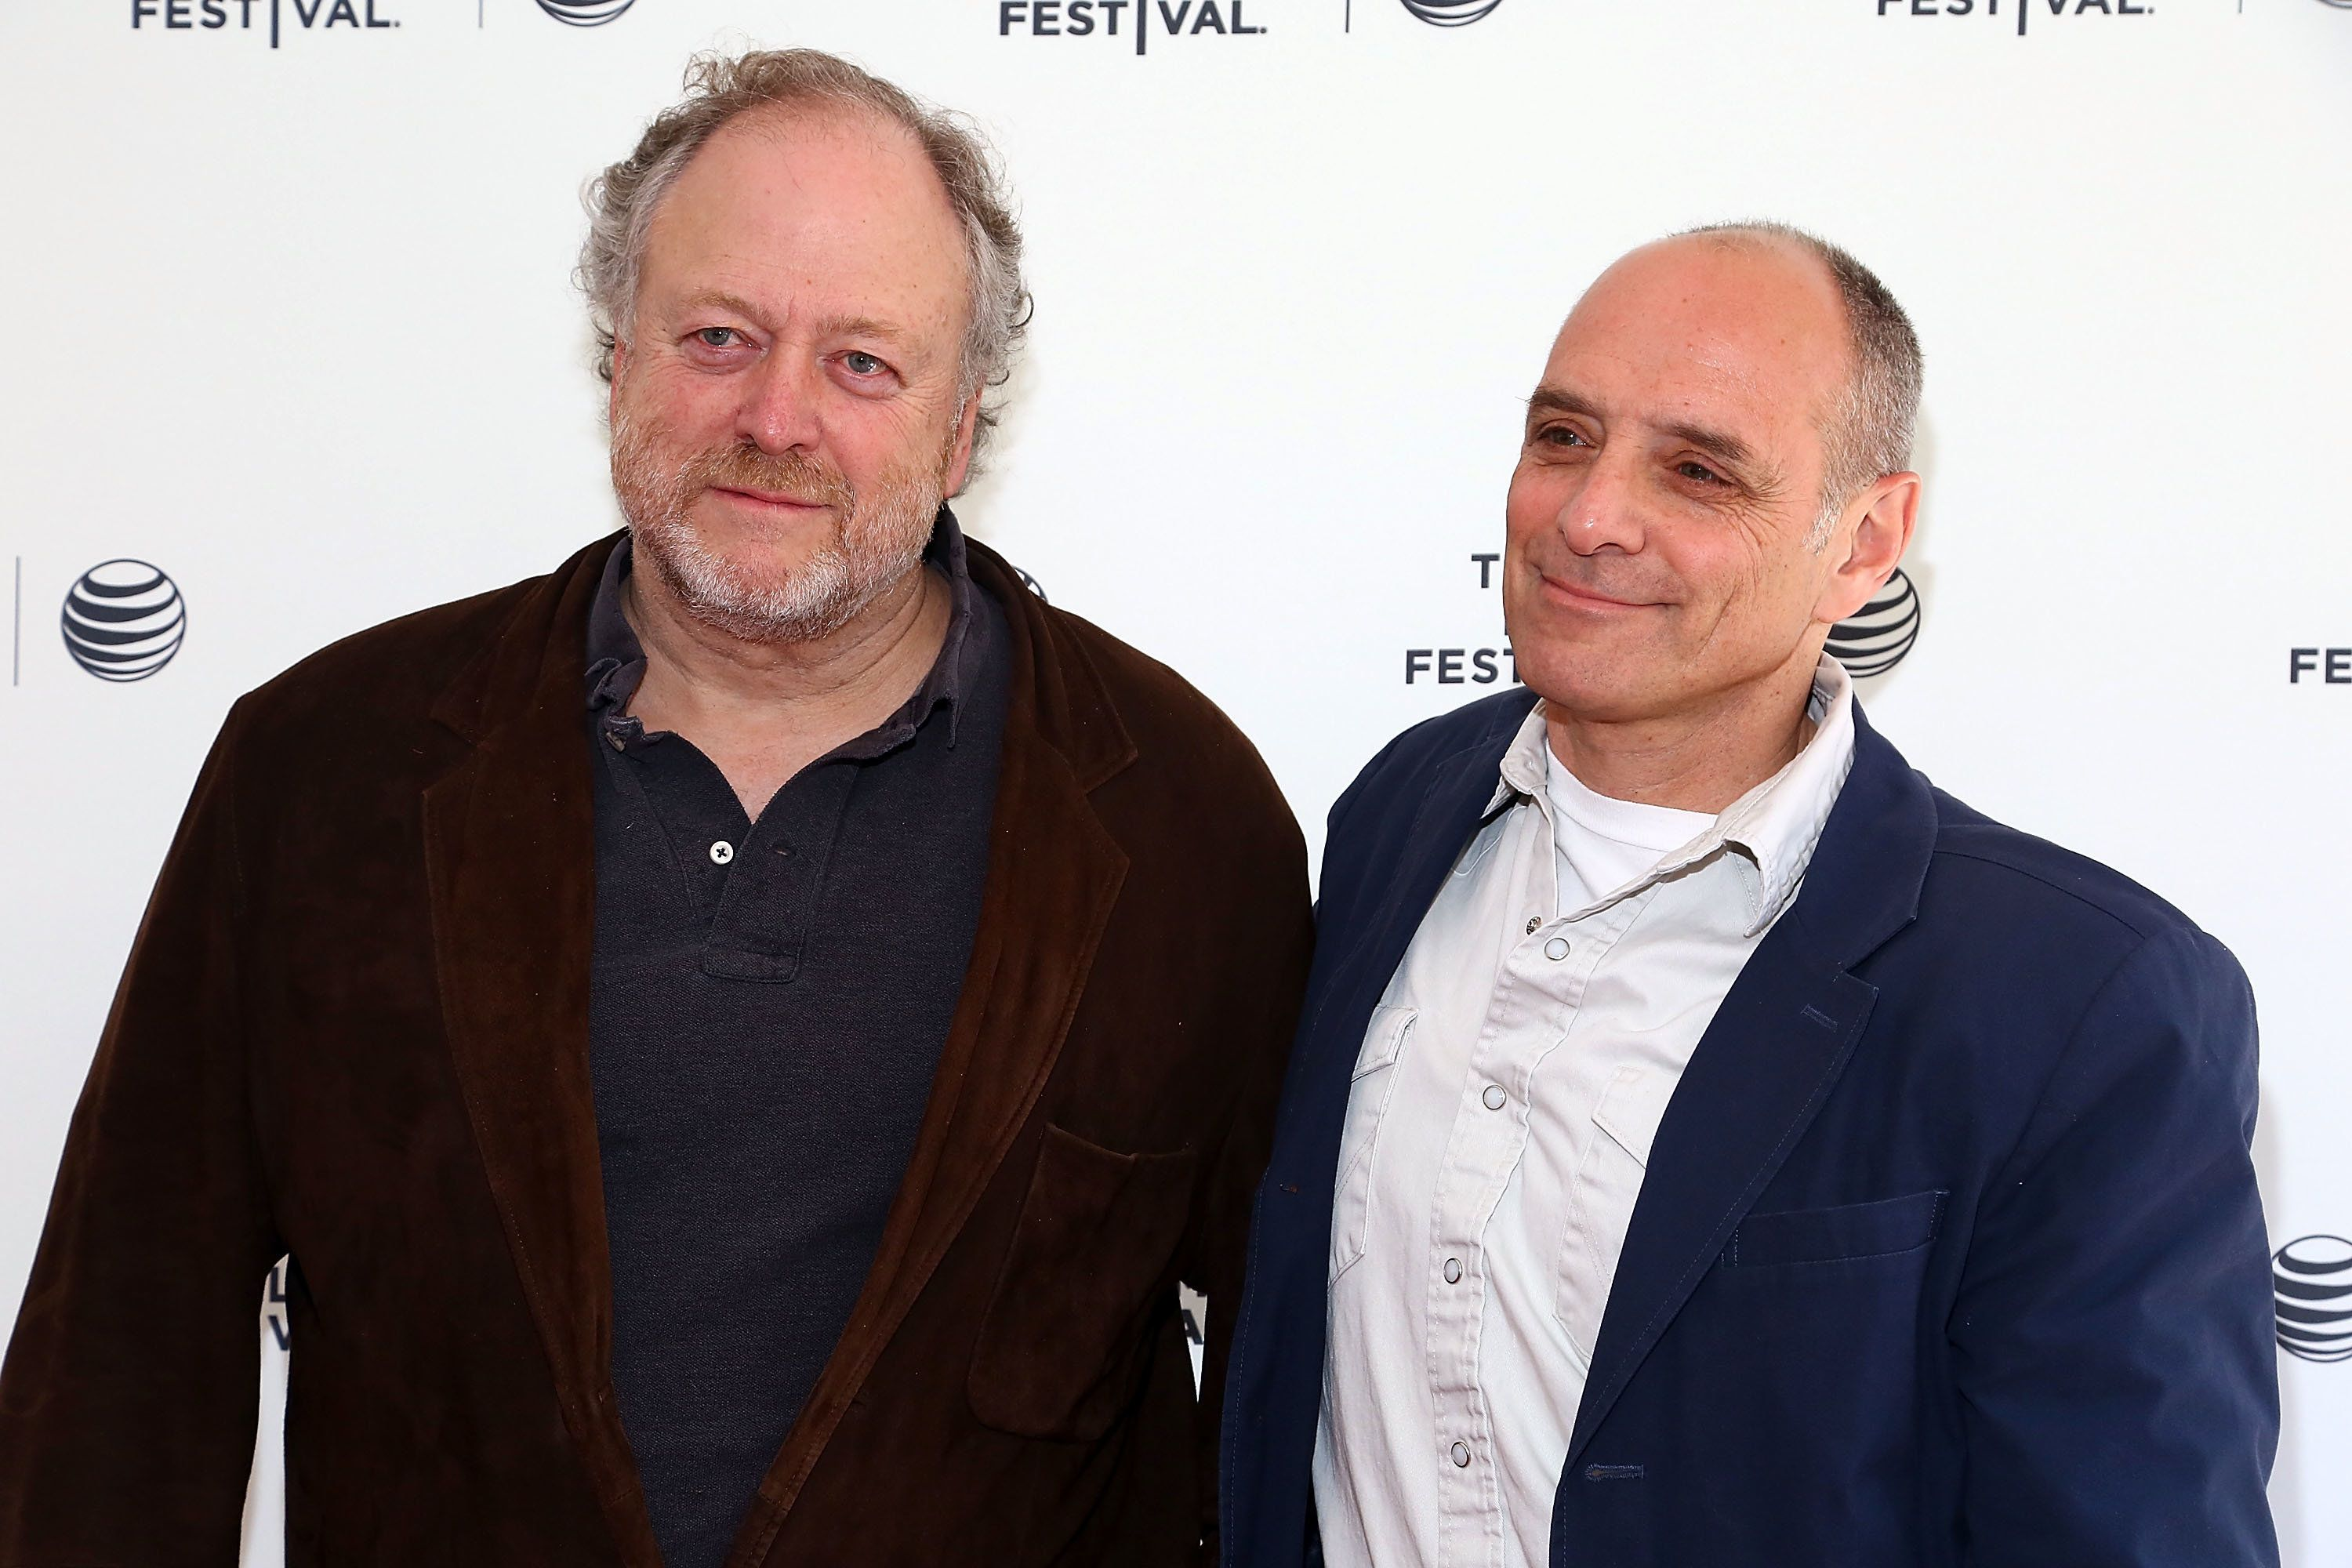 NEW YORK, NY - APRIL 26:  (L-R) Producer Hamilton Fish and author Eric Schlosser attend Tribeca Talks: After the Movie: Food Chains - 2014 Tribeca Film Festival at SVA Theater on April 26, 2014 in New York City.  (Photo by Astrid Stawiarz/Getty Images)